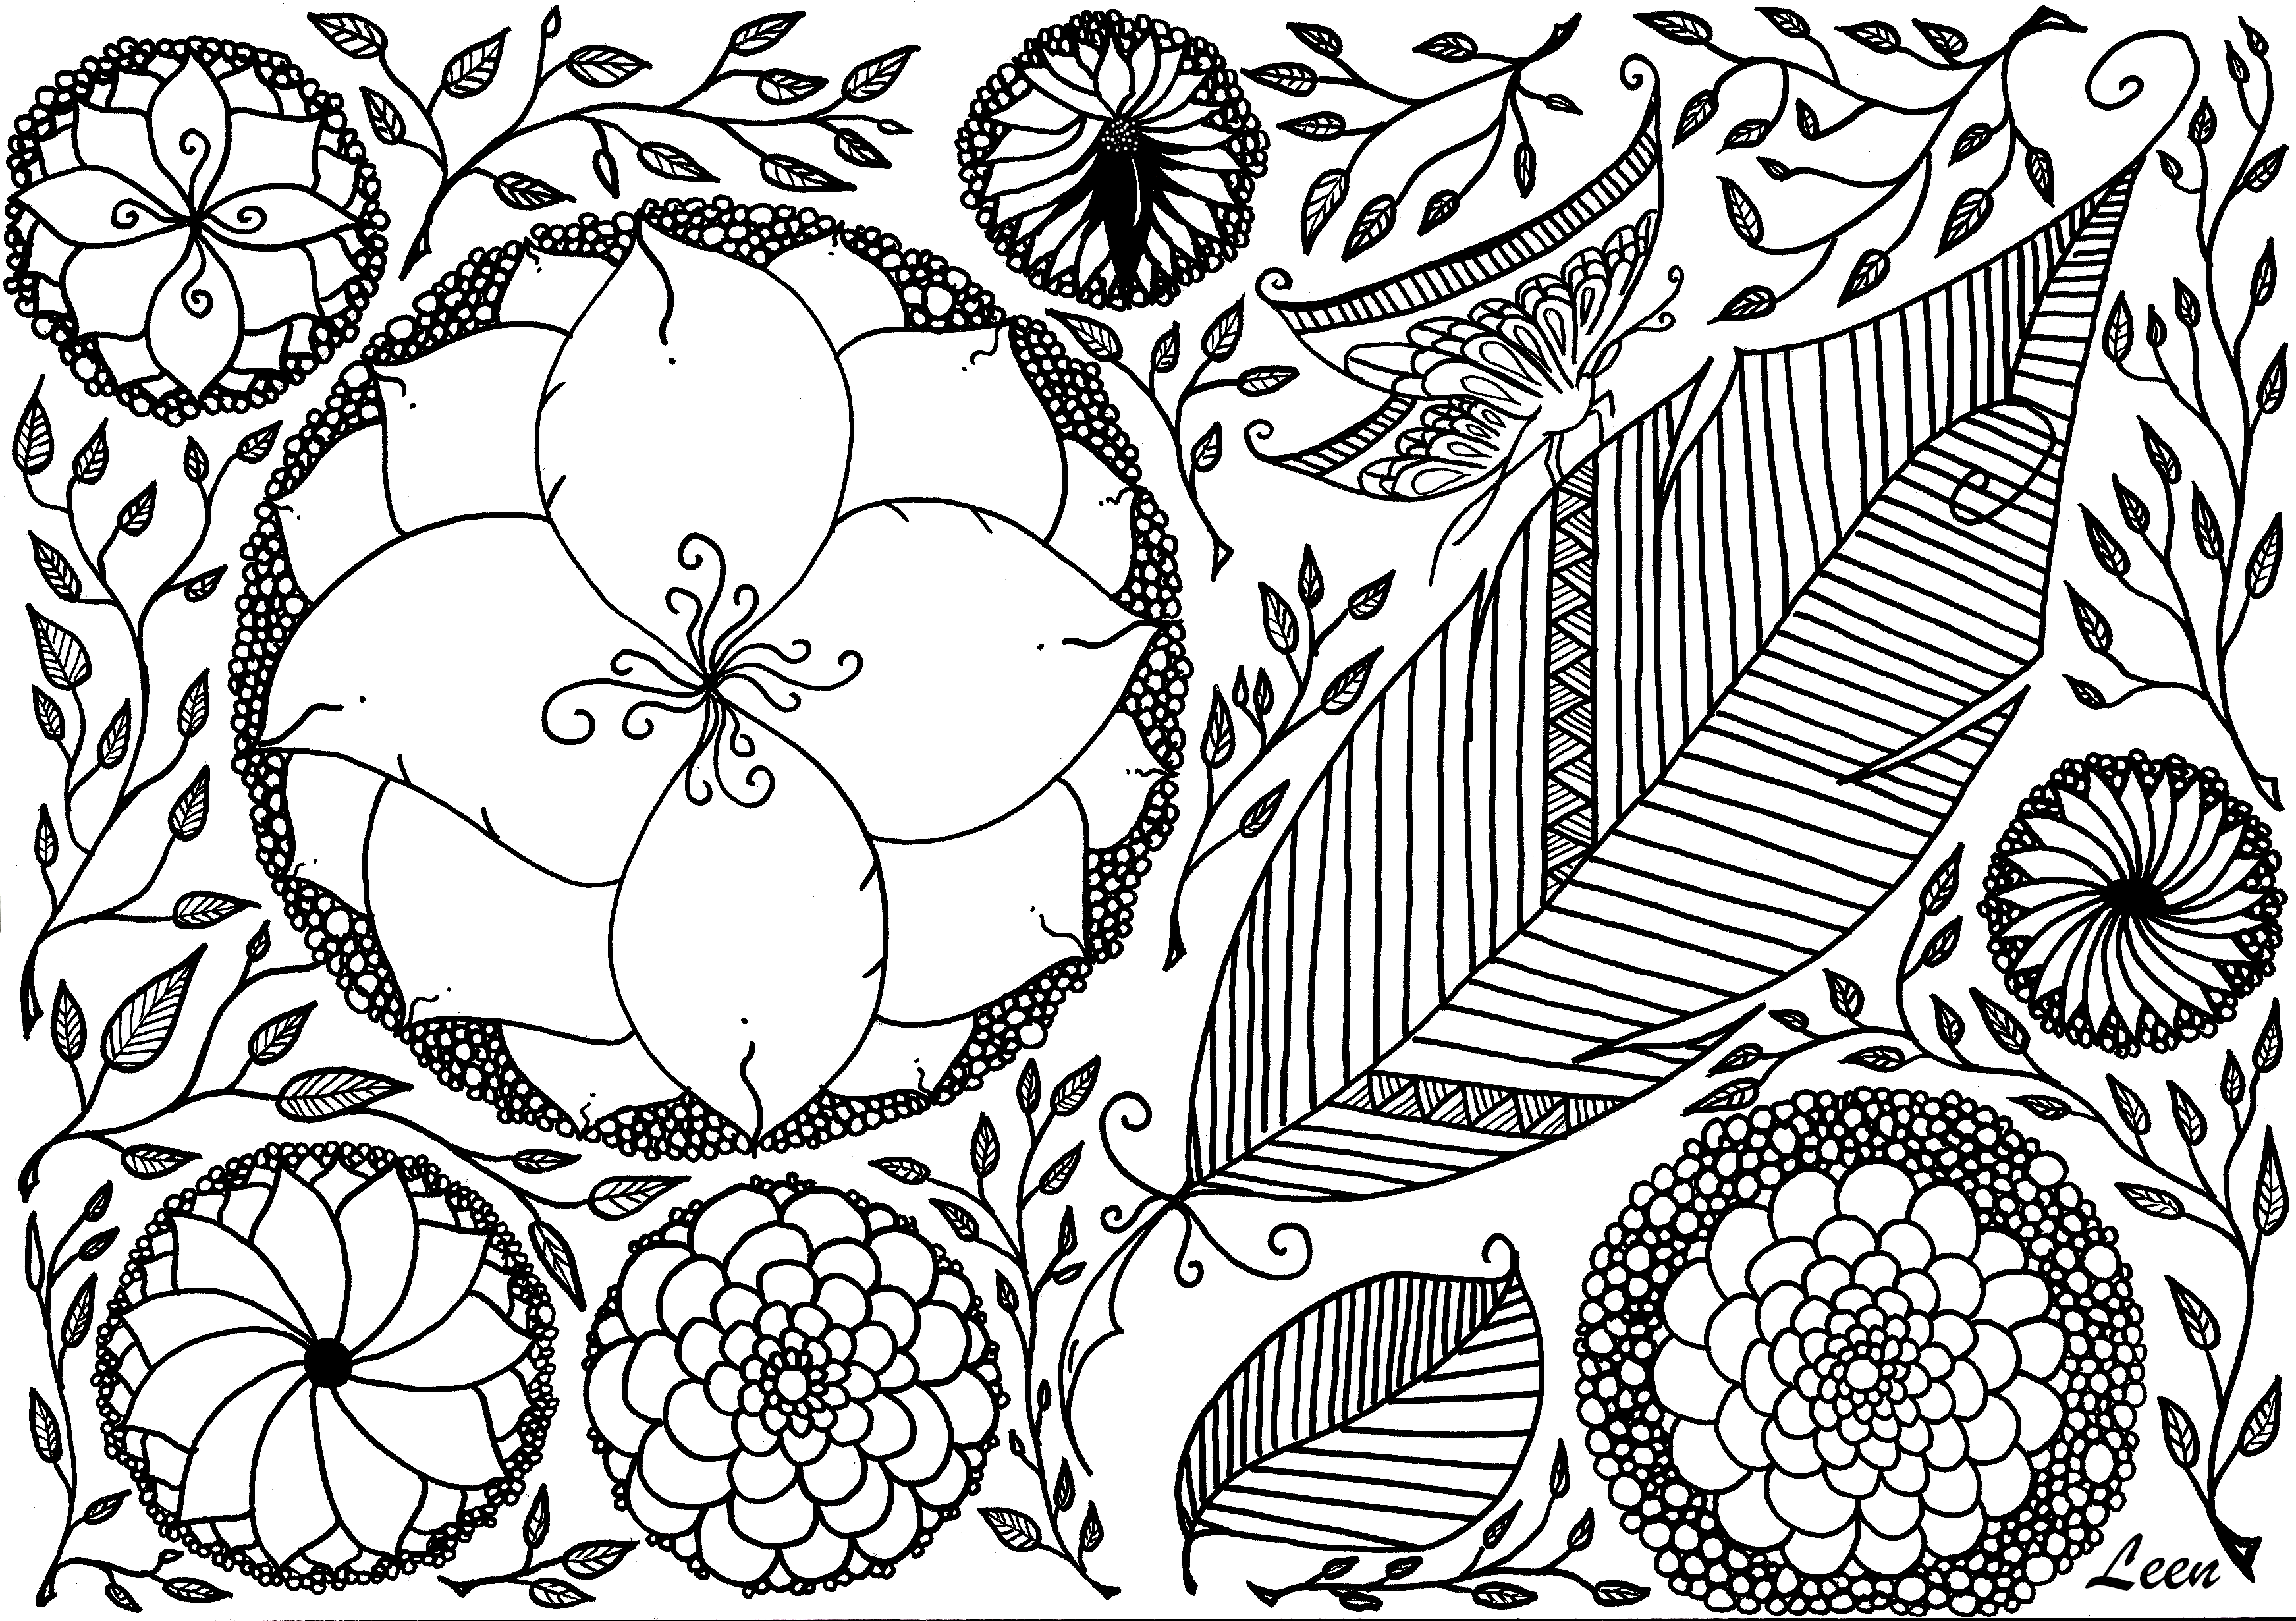 coloring page websites free printable spider web coloring pages for kids websites coloring page